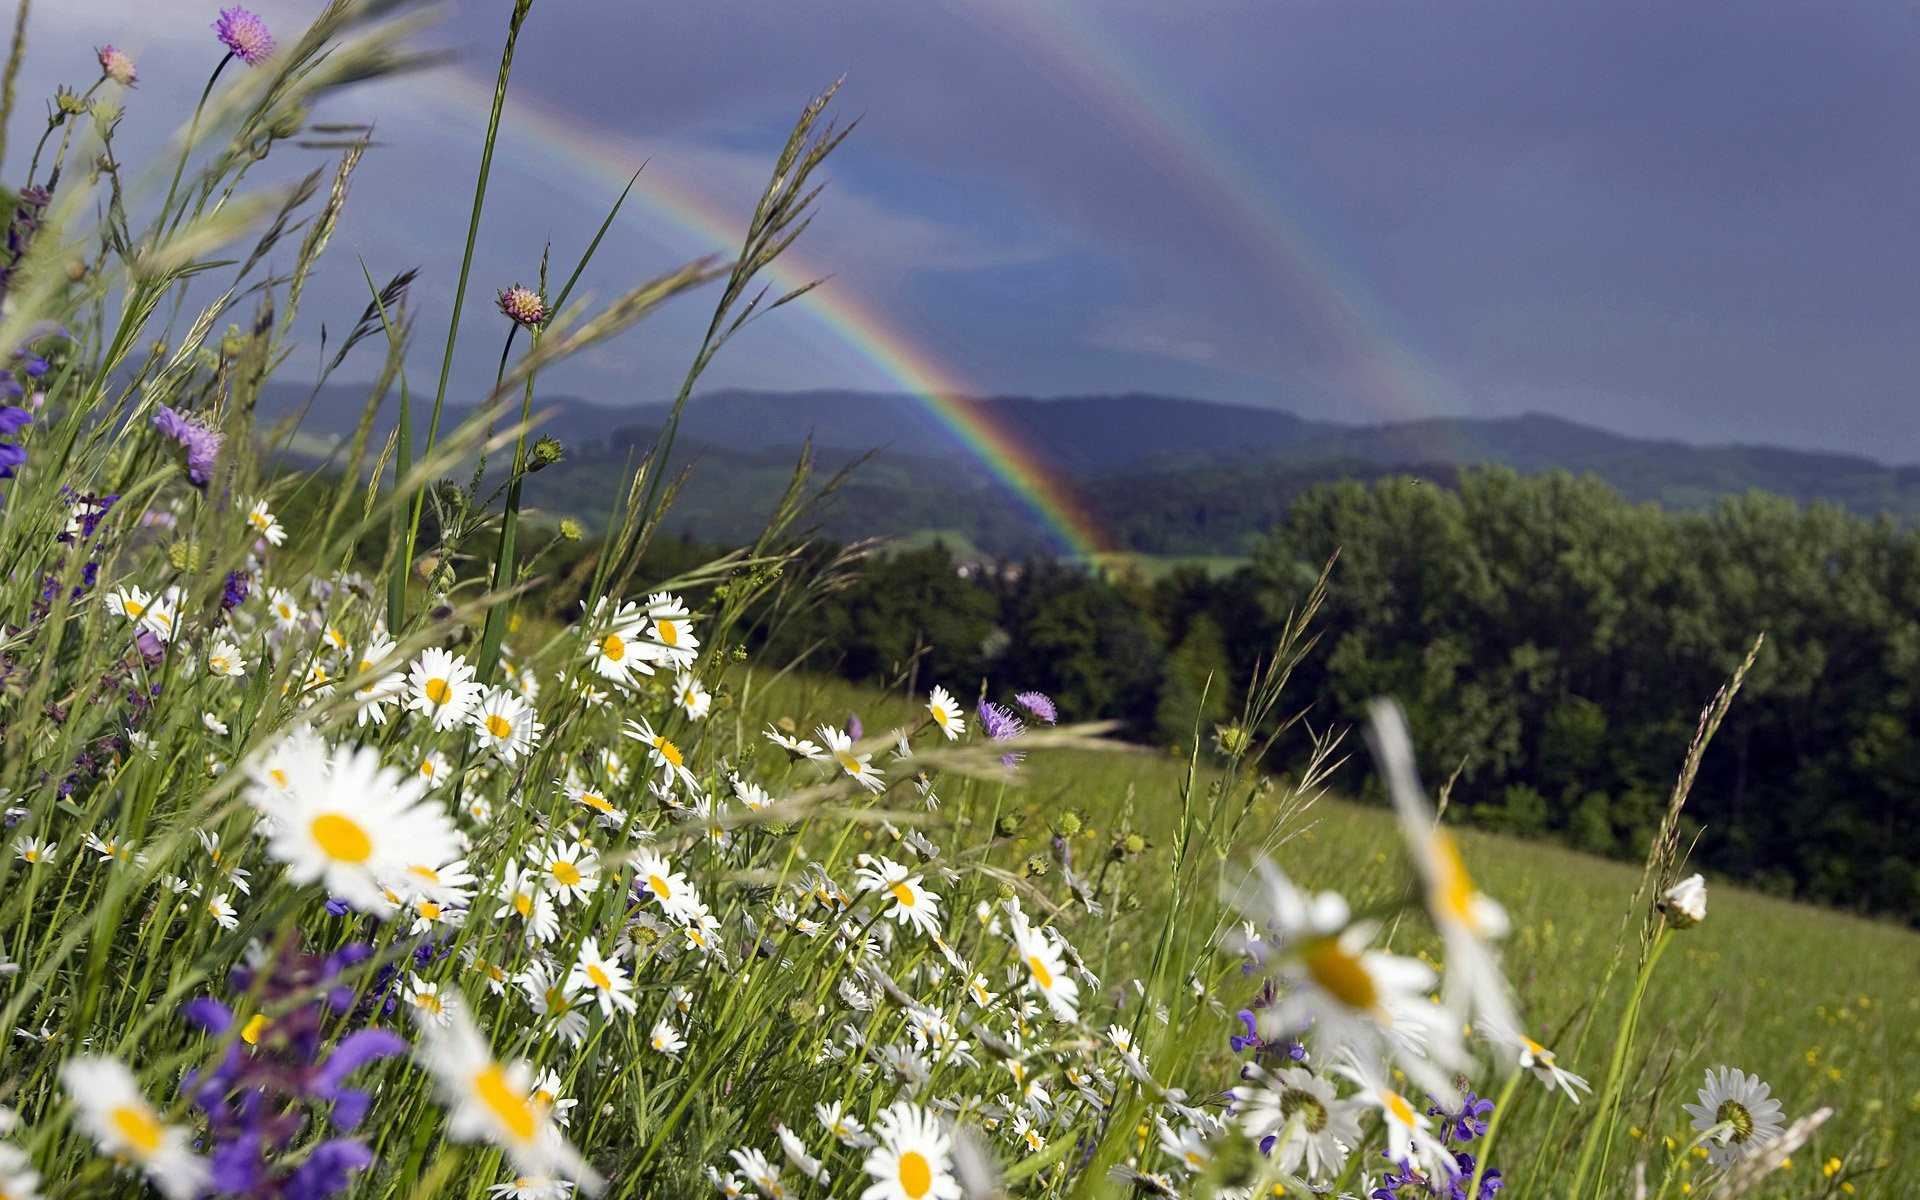 Mobile Wallpaper, Beauty, Mountain, Nature, Hd Flower - Rainbow Over A Meadow , HD Wallpaper & Backgrounds